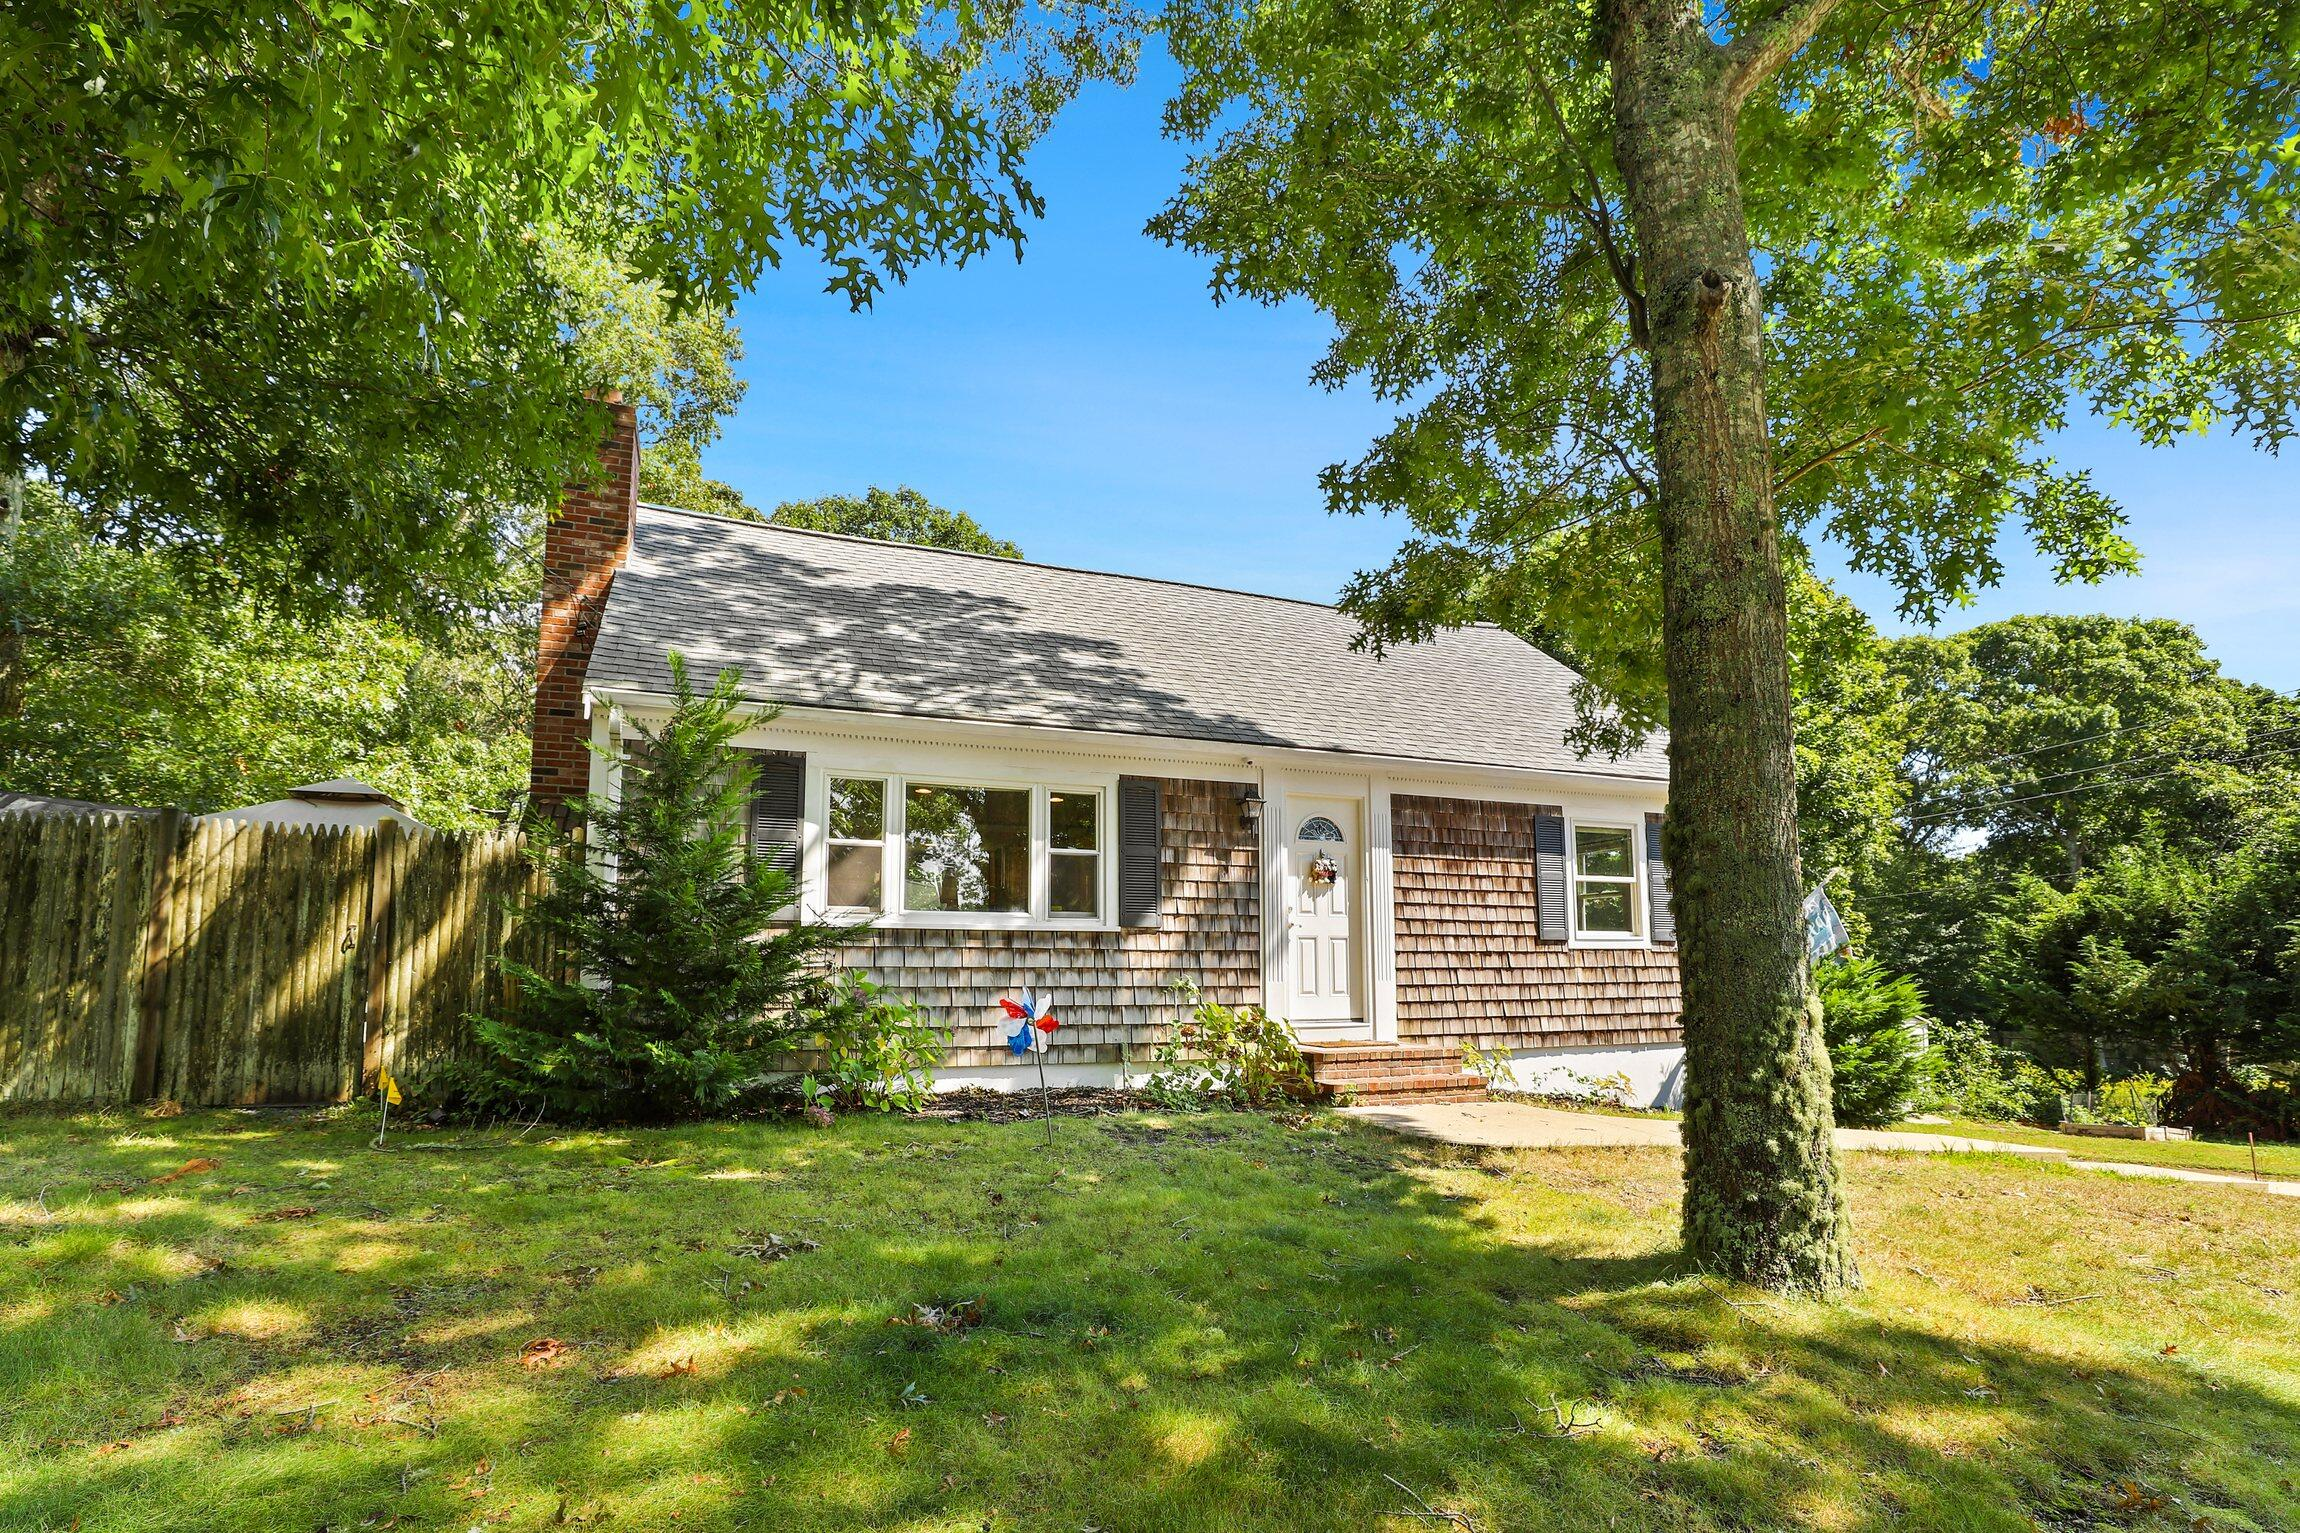 10 Cherry Lane, West Yarmouth MA, 02673 details